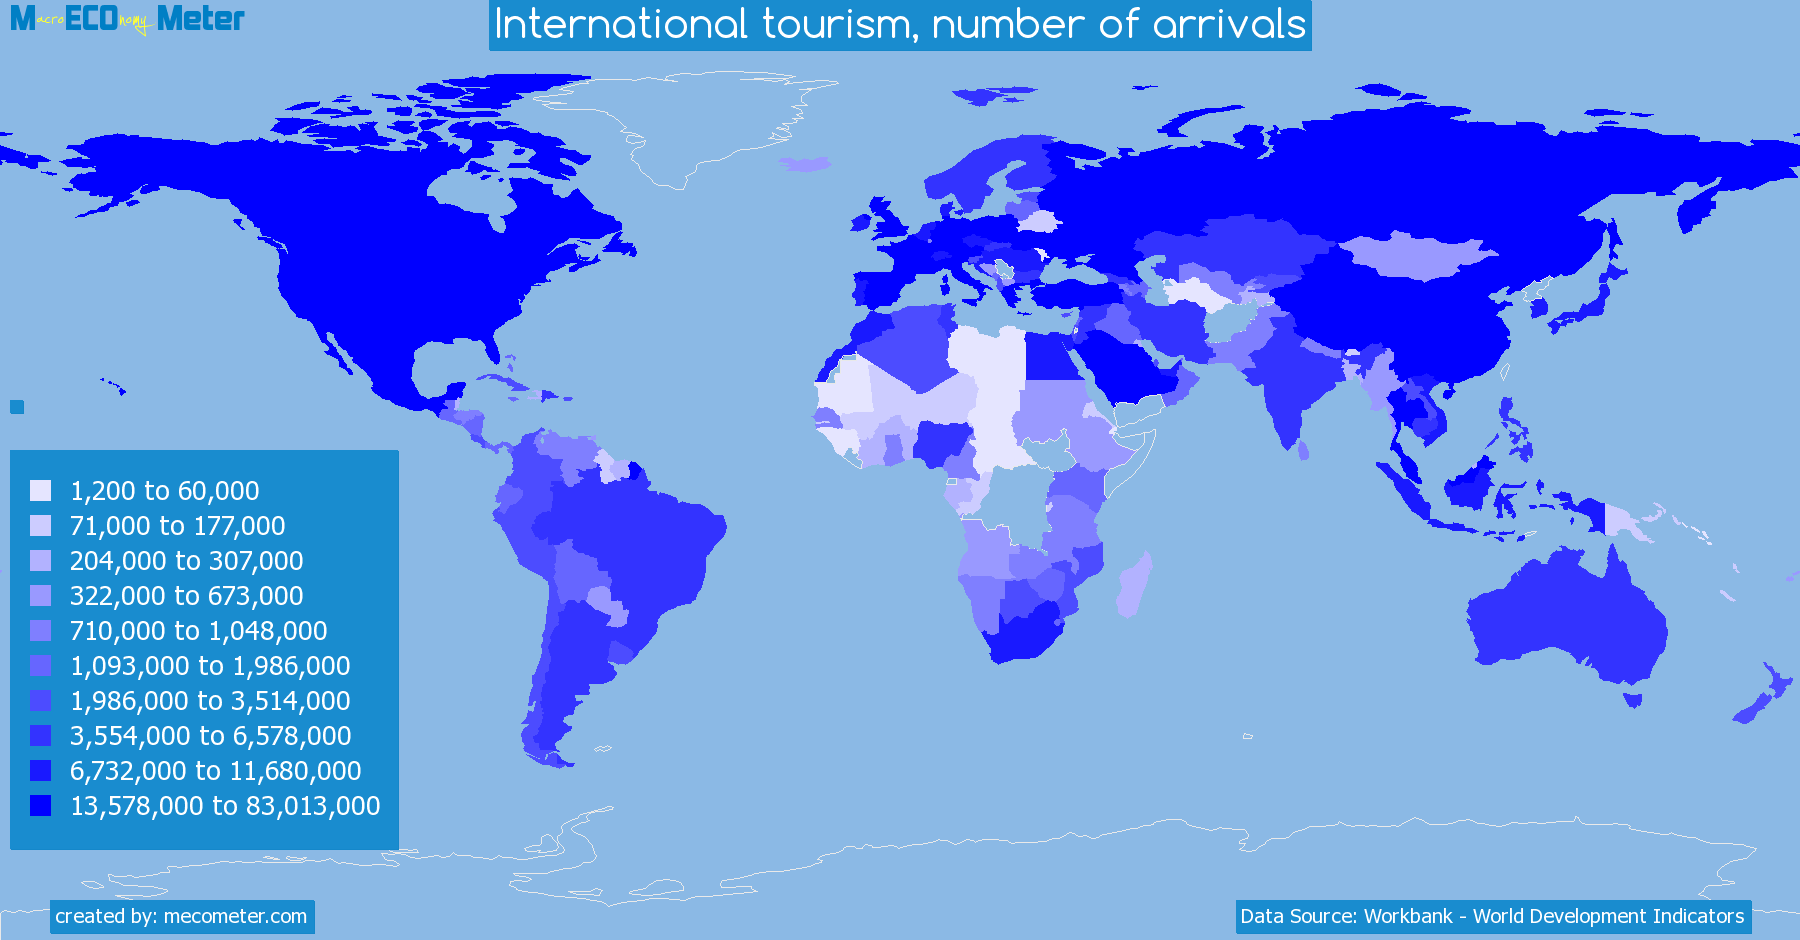 Worldmap of all countries colored to reflect the values of International tourism, number of arrivals